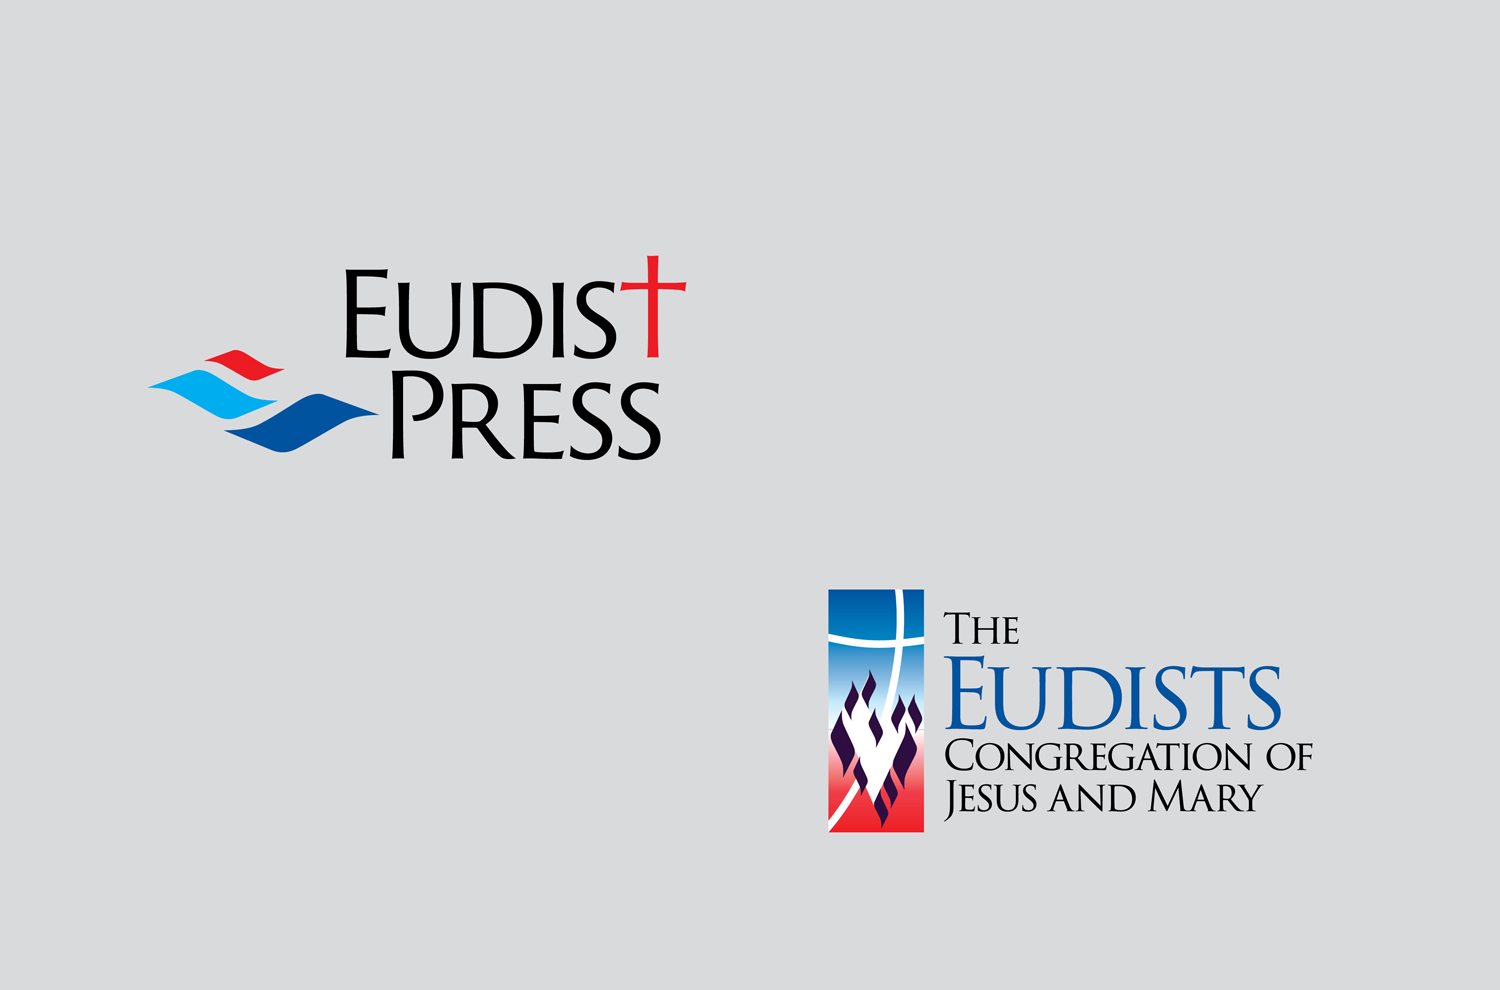 Eudist Press and The Eudists Congregation of Jesus and Mary